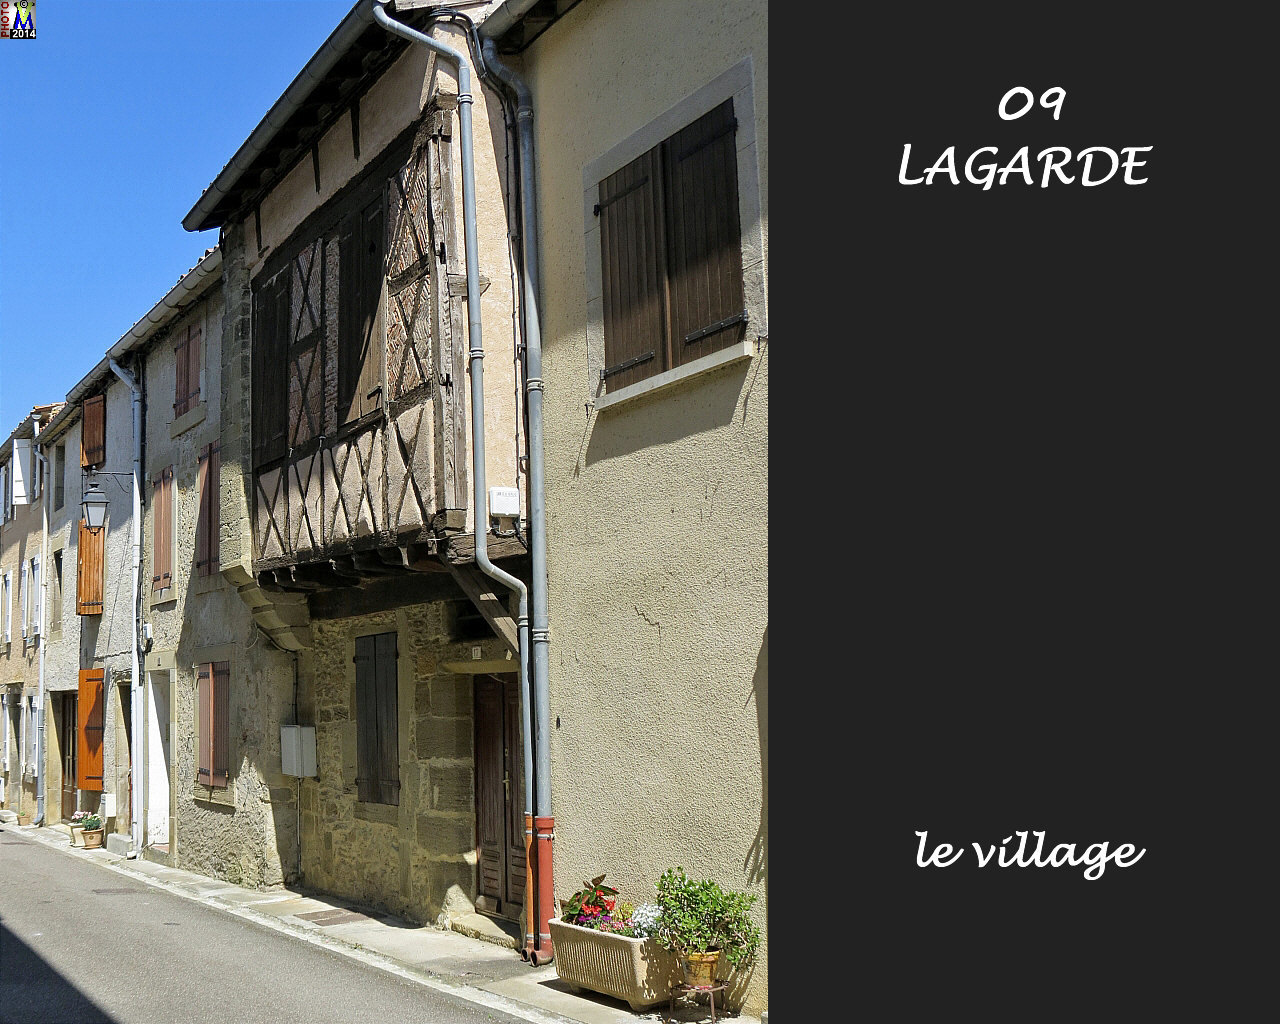 09LAGARDE_village_112.jpg